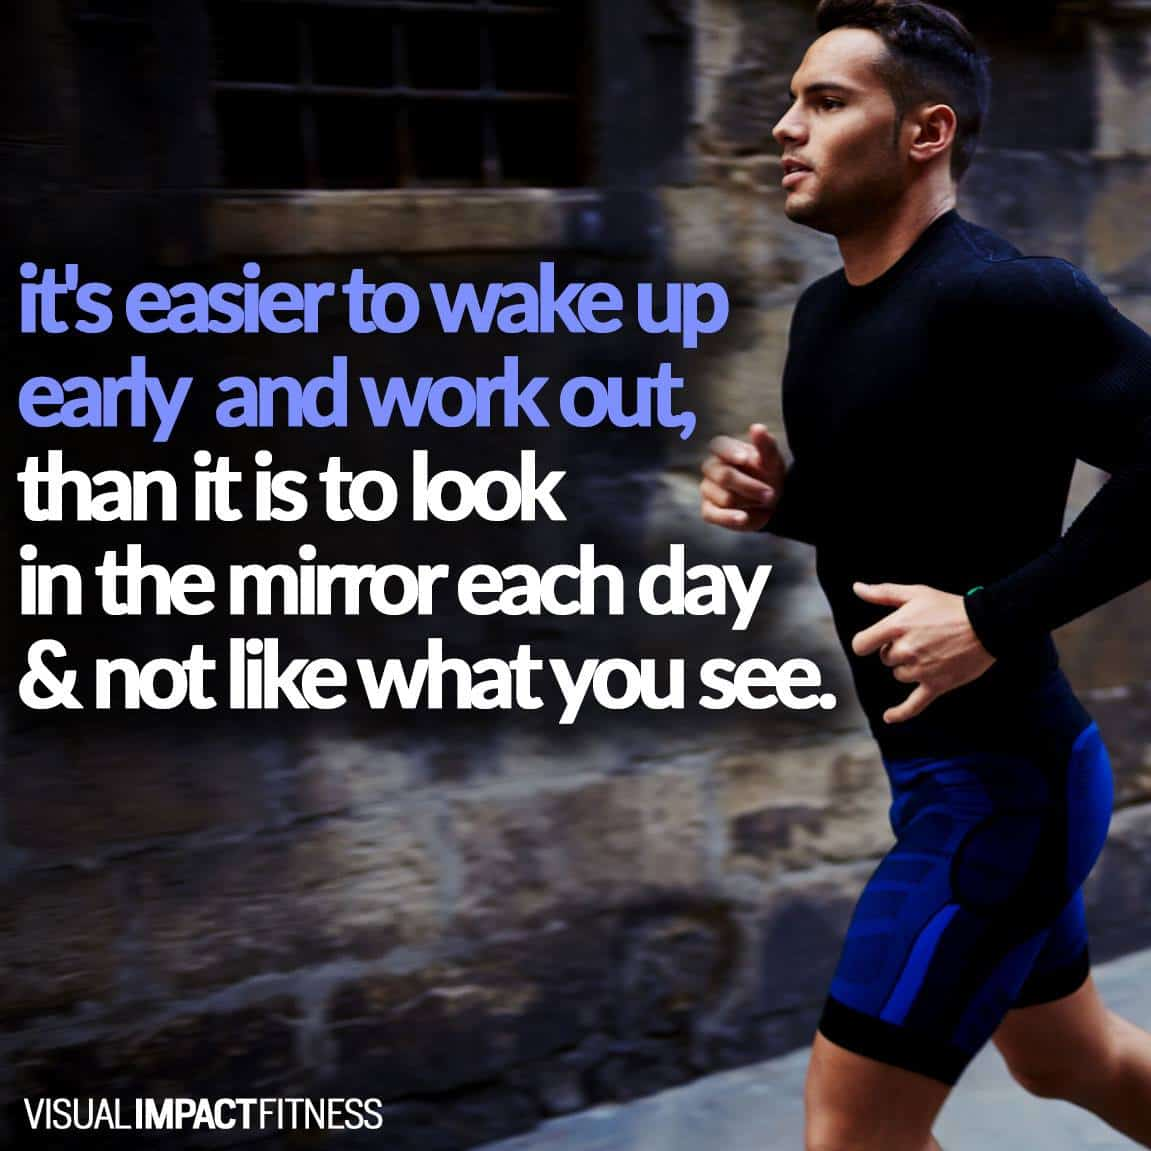 It's easier to wake up early and work out, than it is to look in the mirror each day and not like what you see.